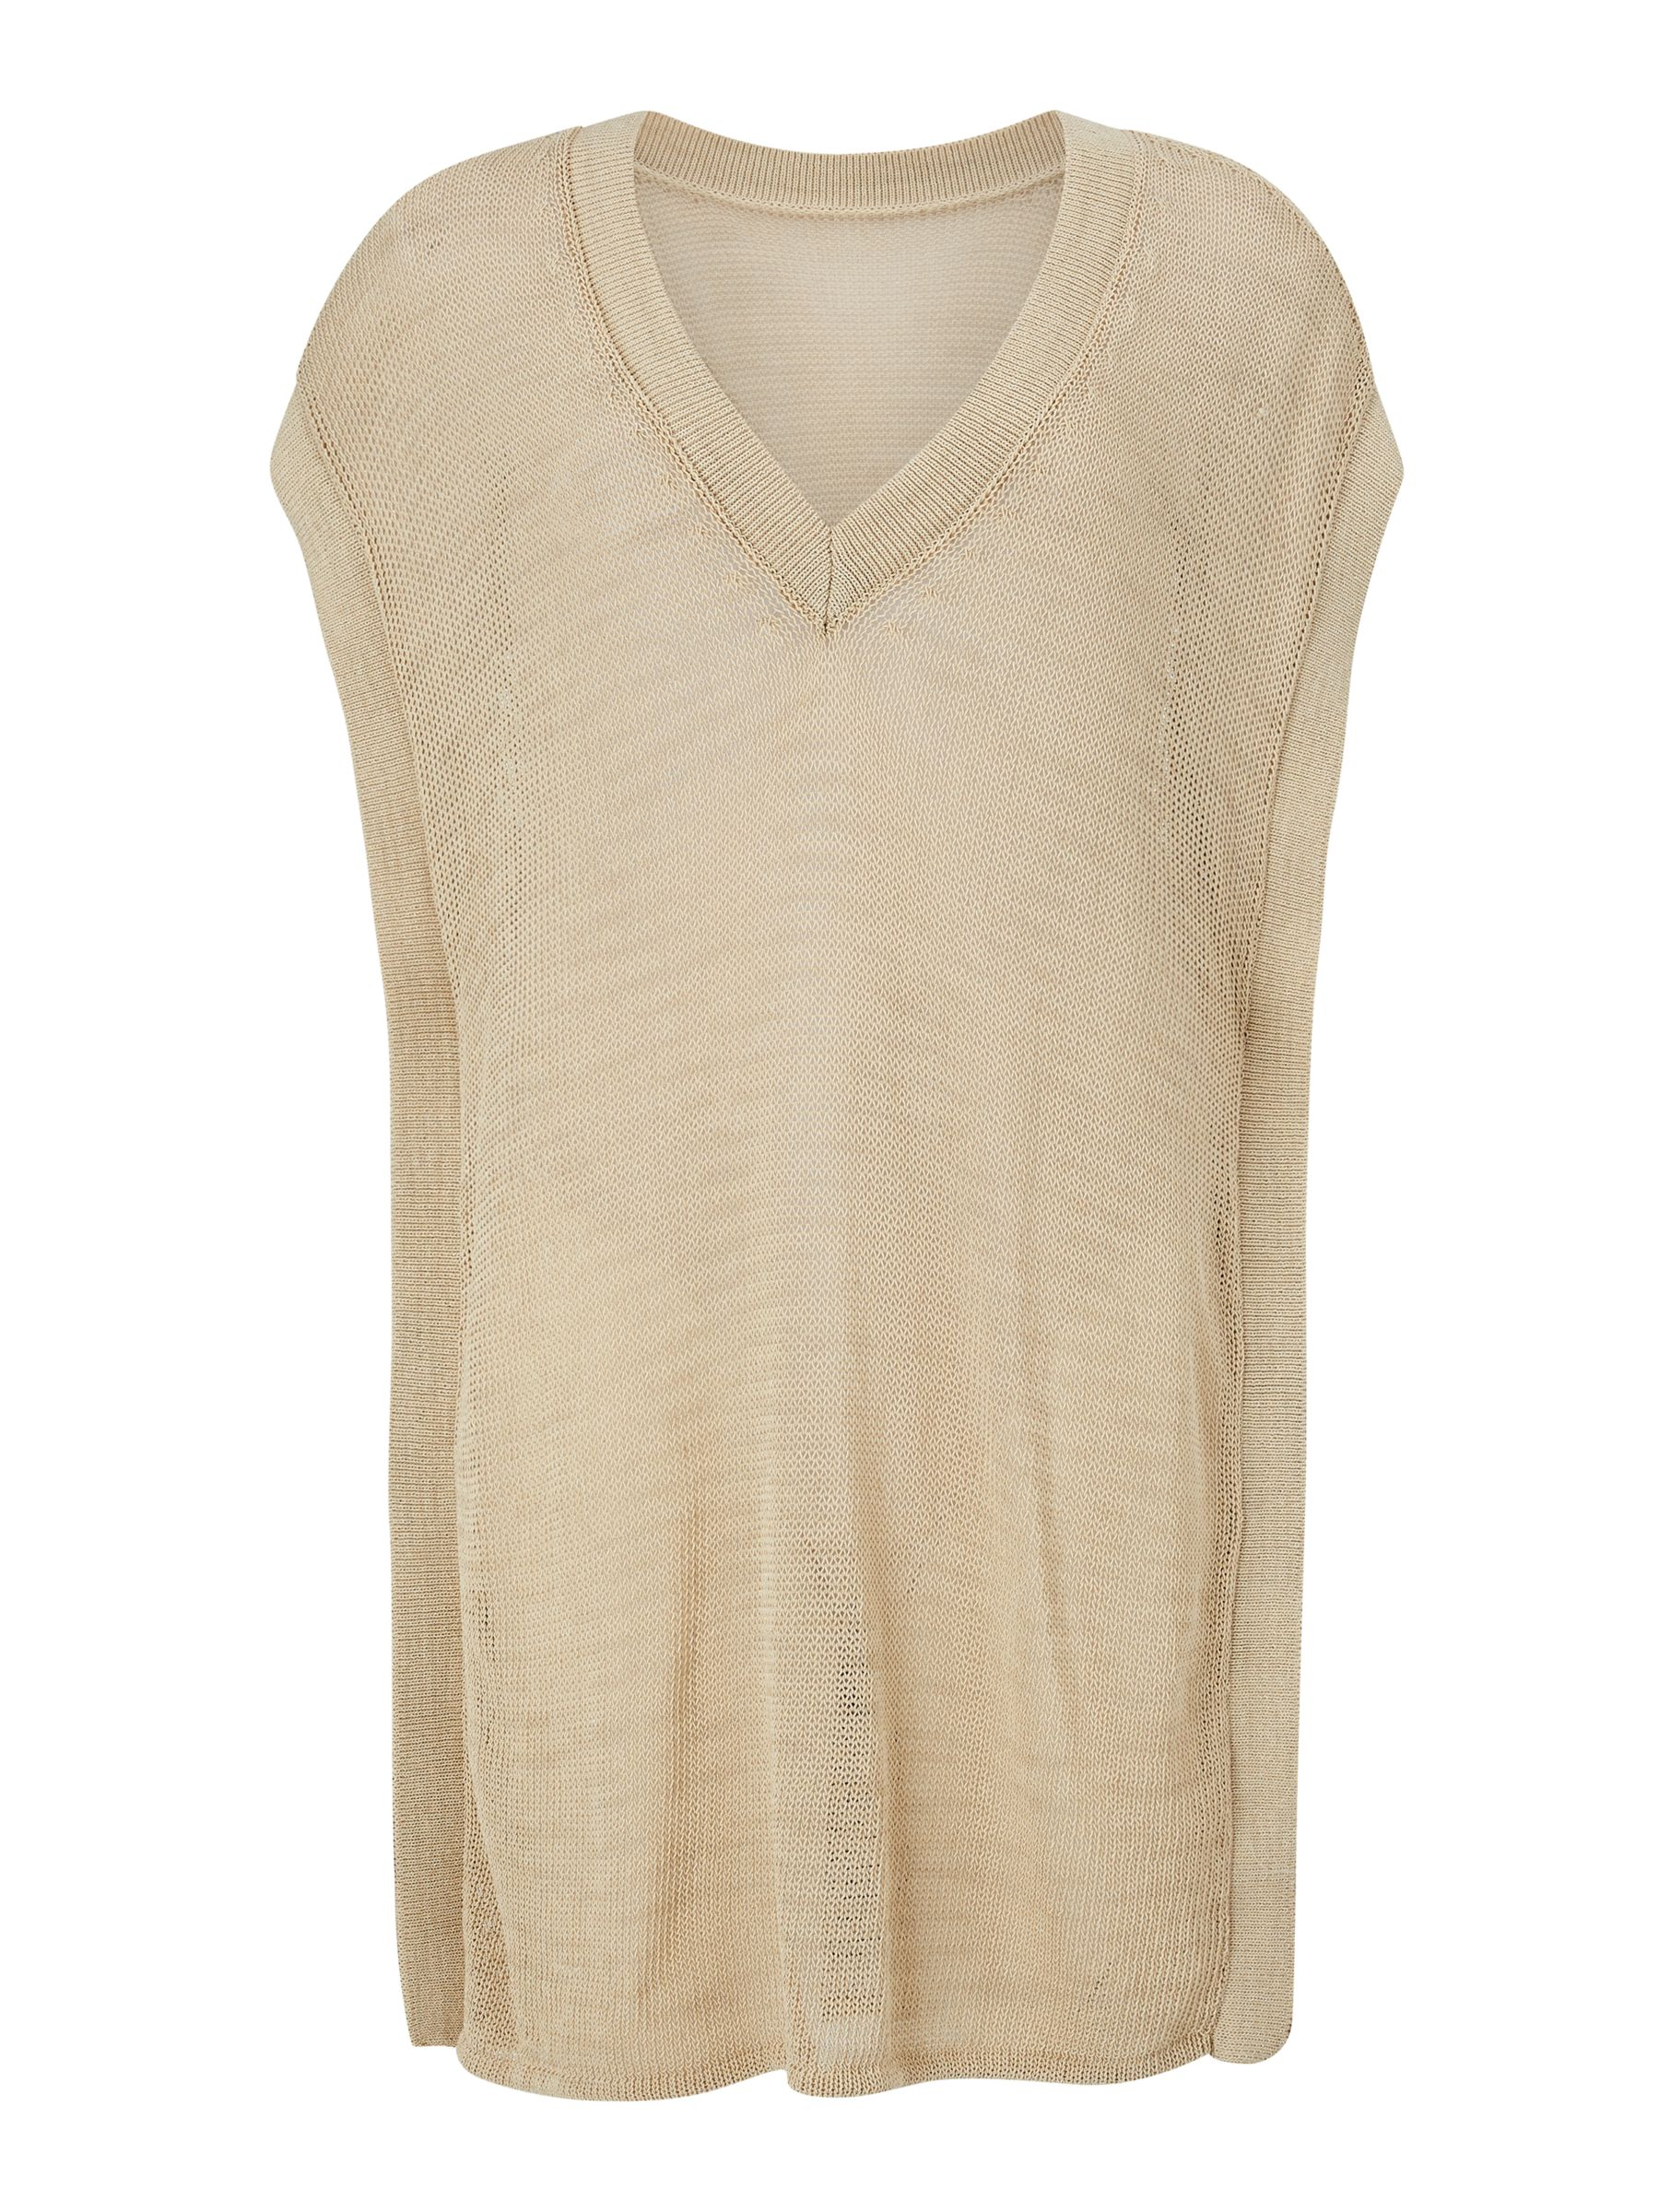 BuyModern Rarity J. JS Lee Open Knit Poncho, Gold, L Online at johnlewis.com